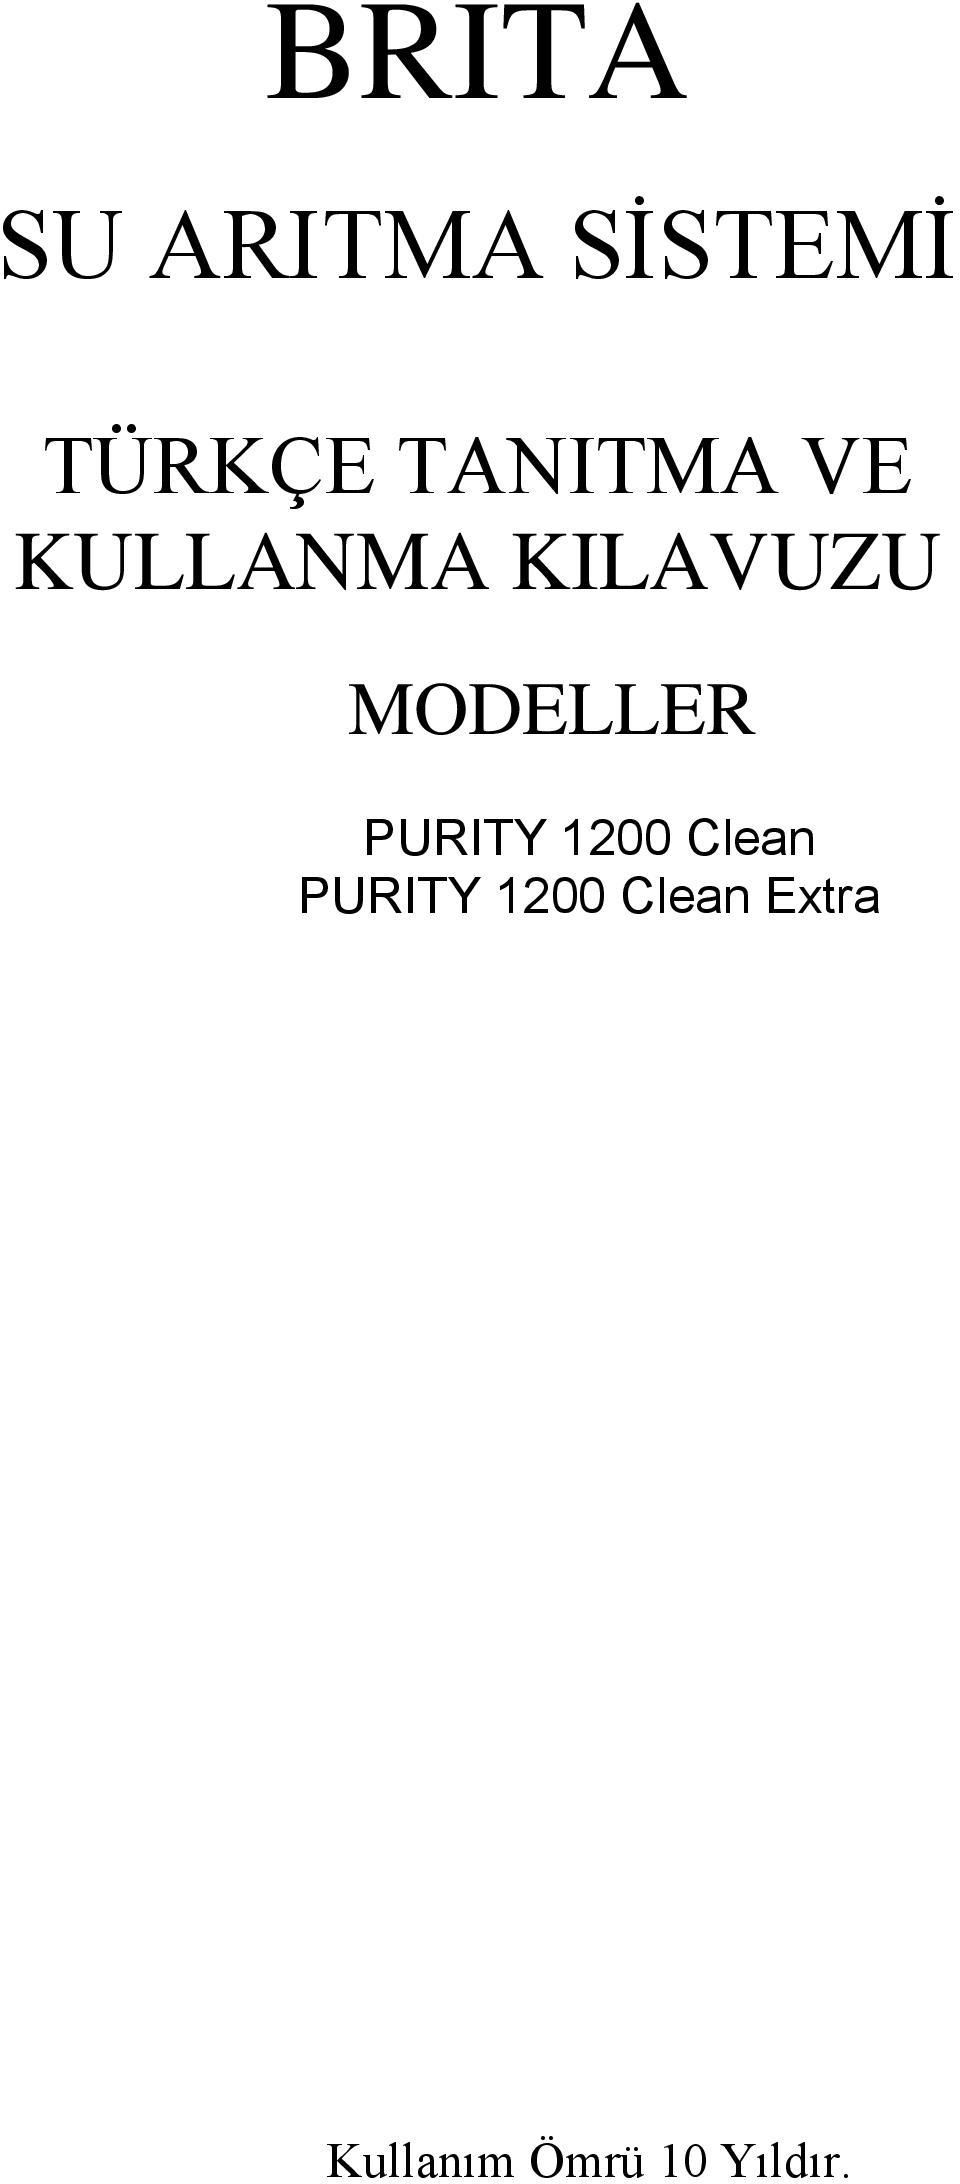 MODELLER PURITY 1200 Clean PURITY